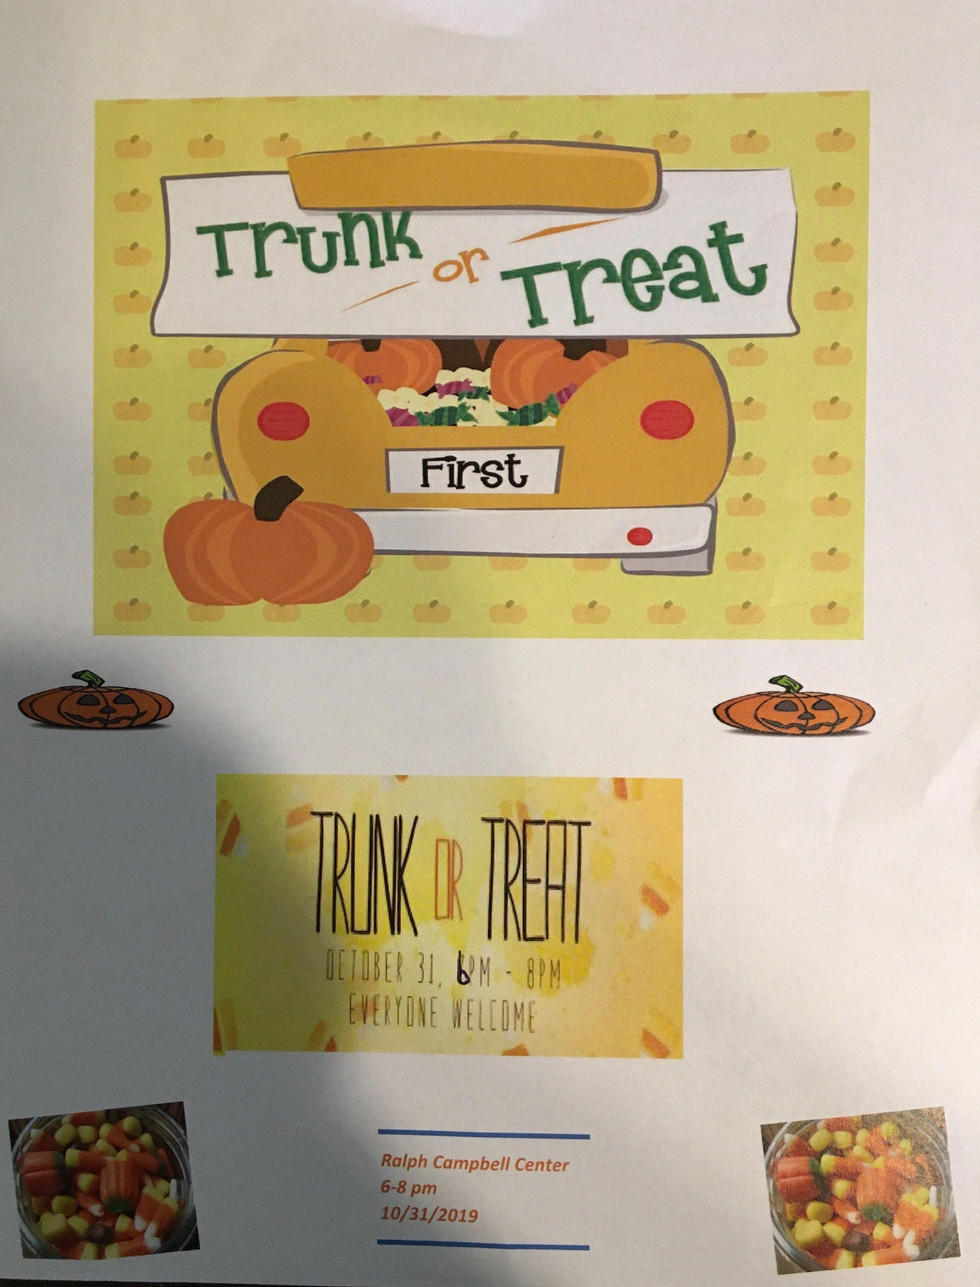 Trunk or Treat Event, October 31st from 6pm-8pm